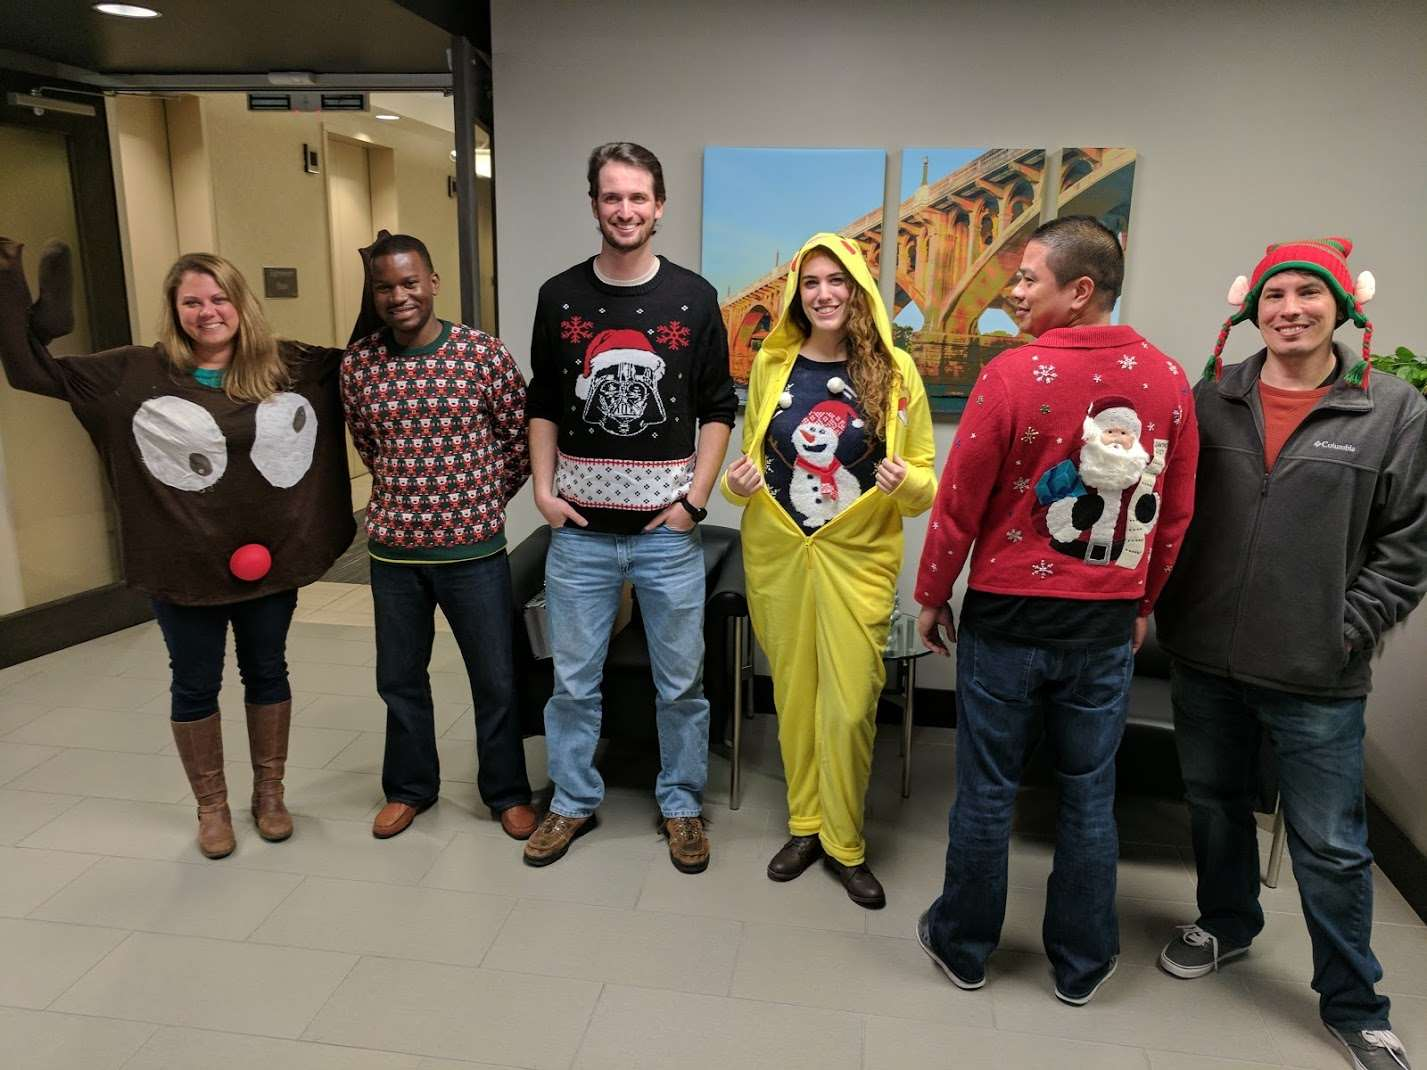 A variety of ugly Christmas sweaters.